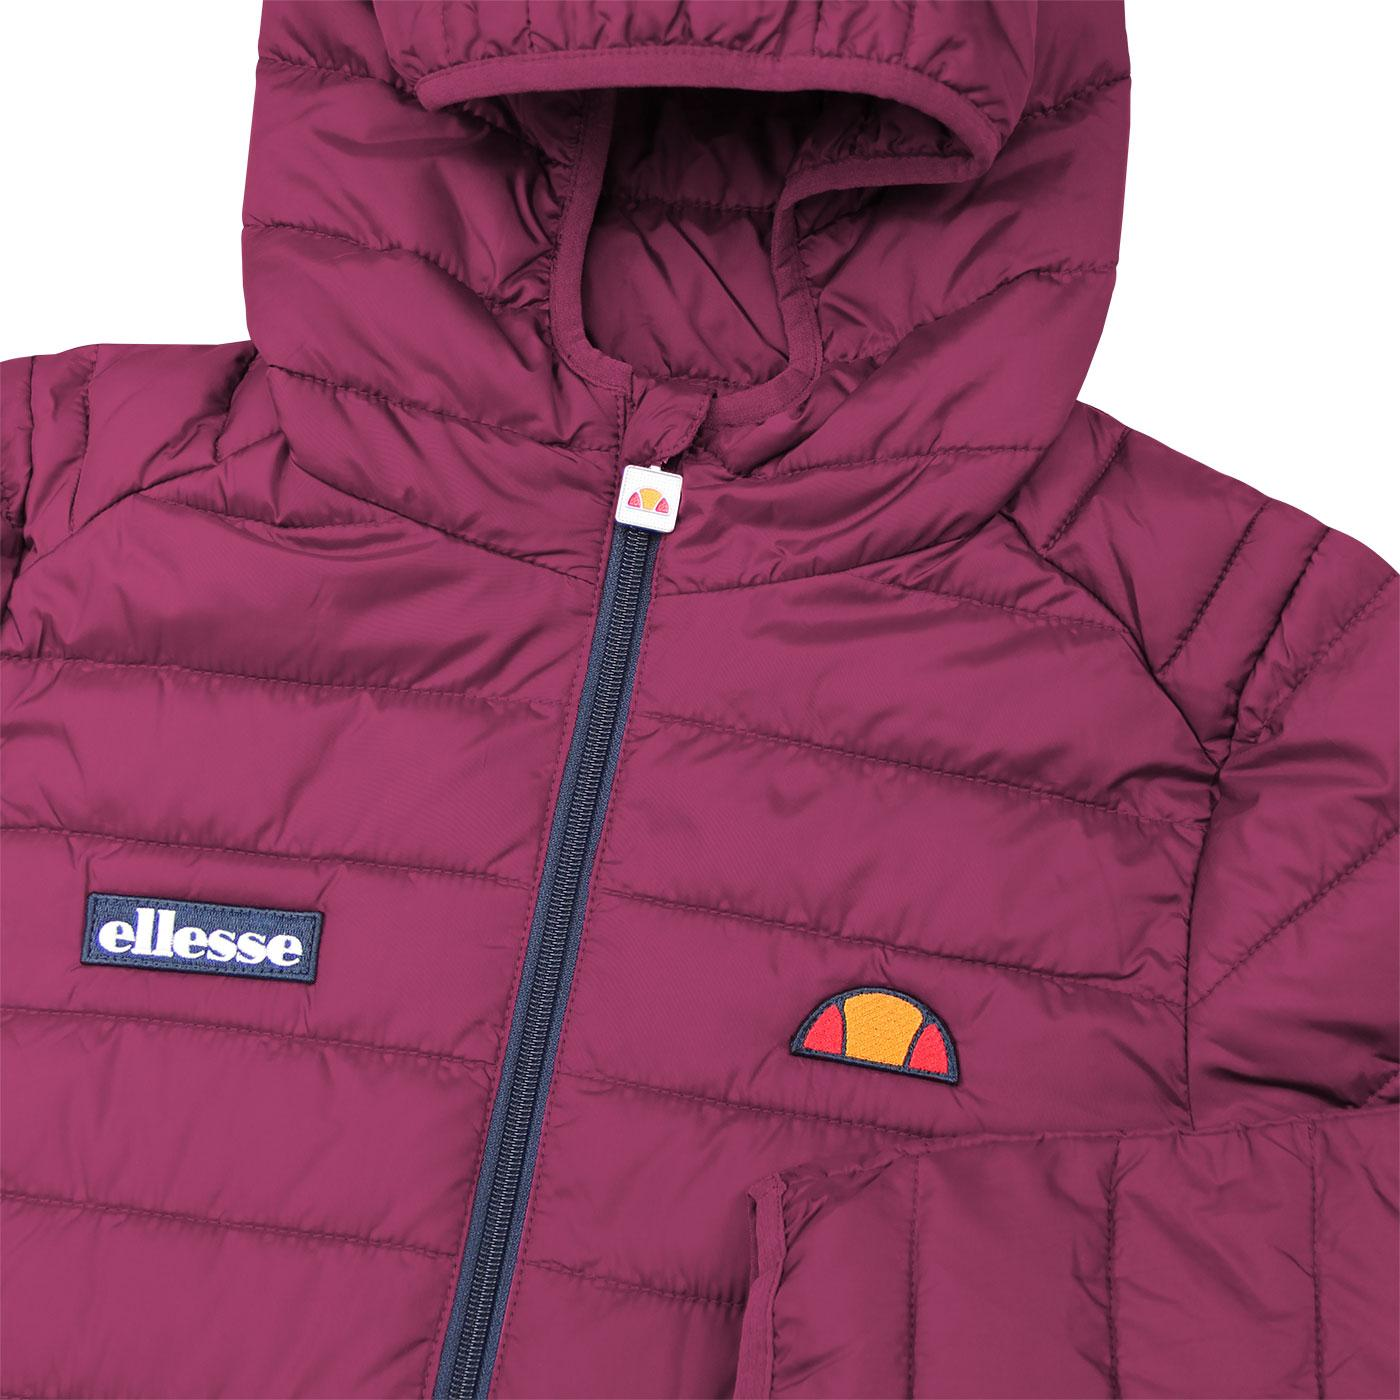 eb04bac4 ELLESSE 'Lombardy' Retro 70s Quilted Ski Jacket in Purple